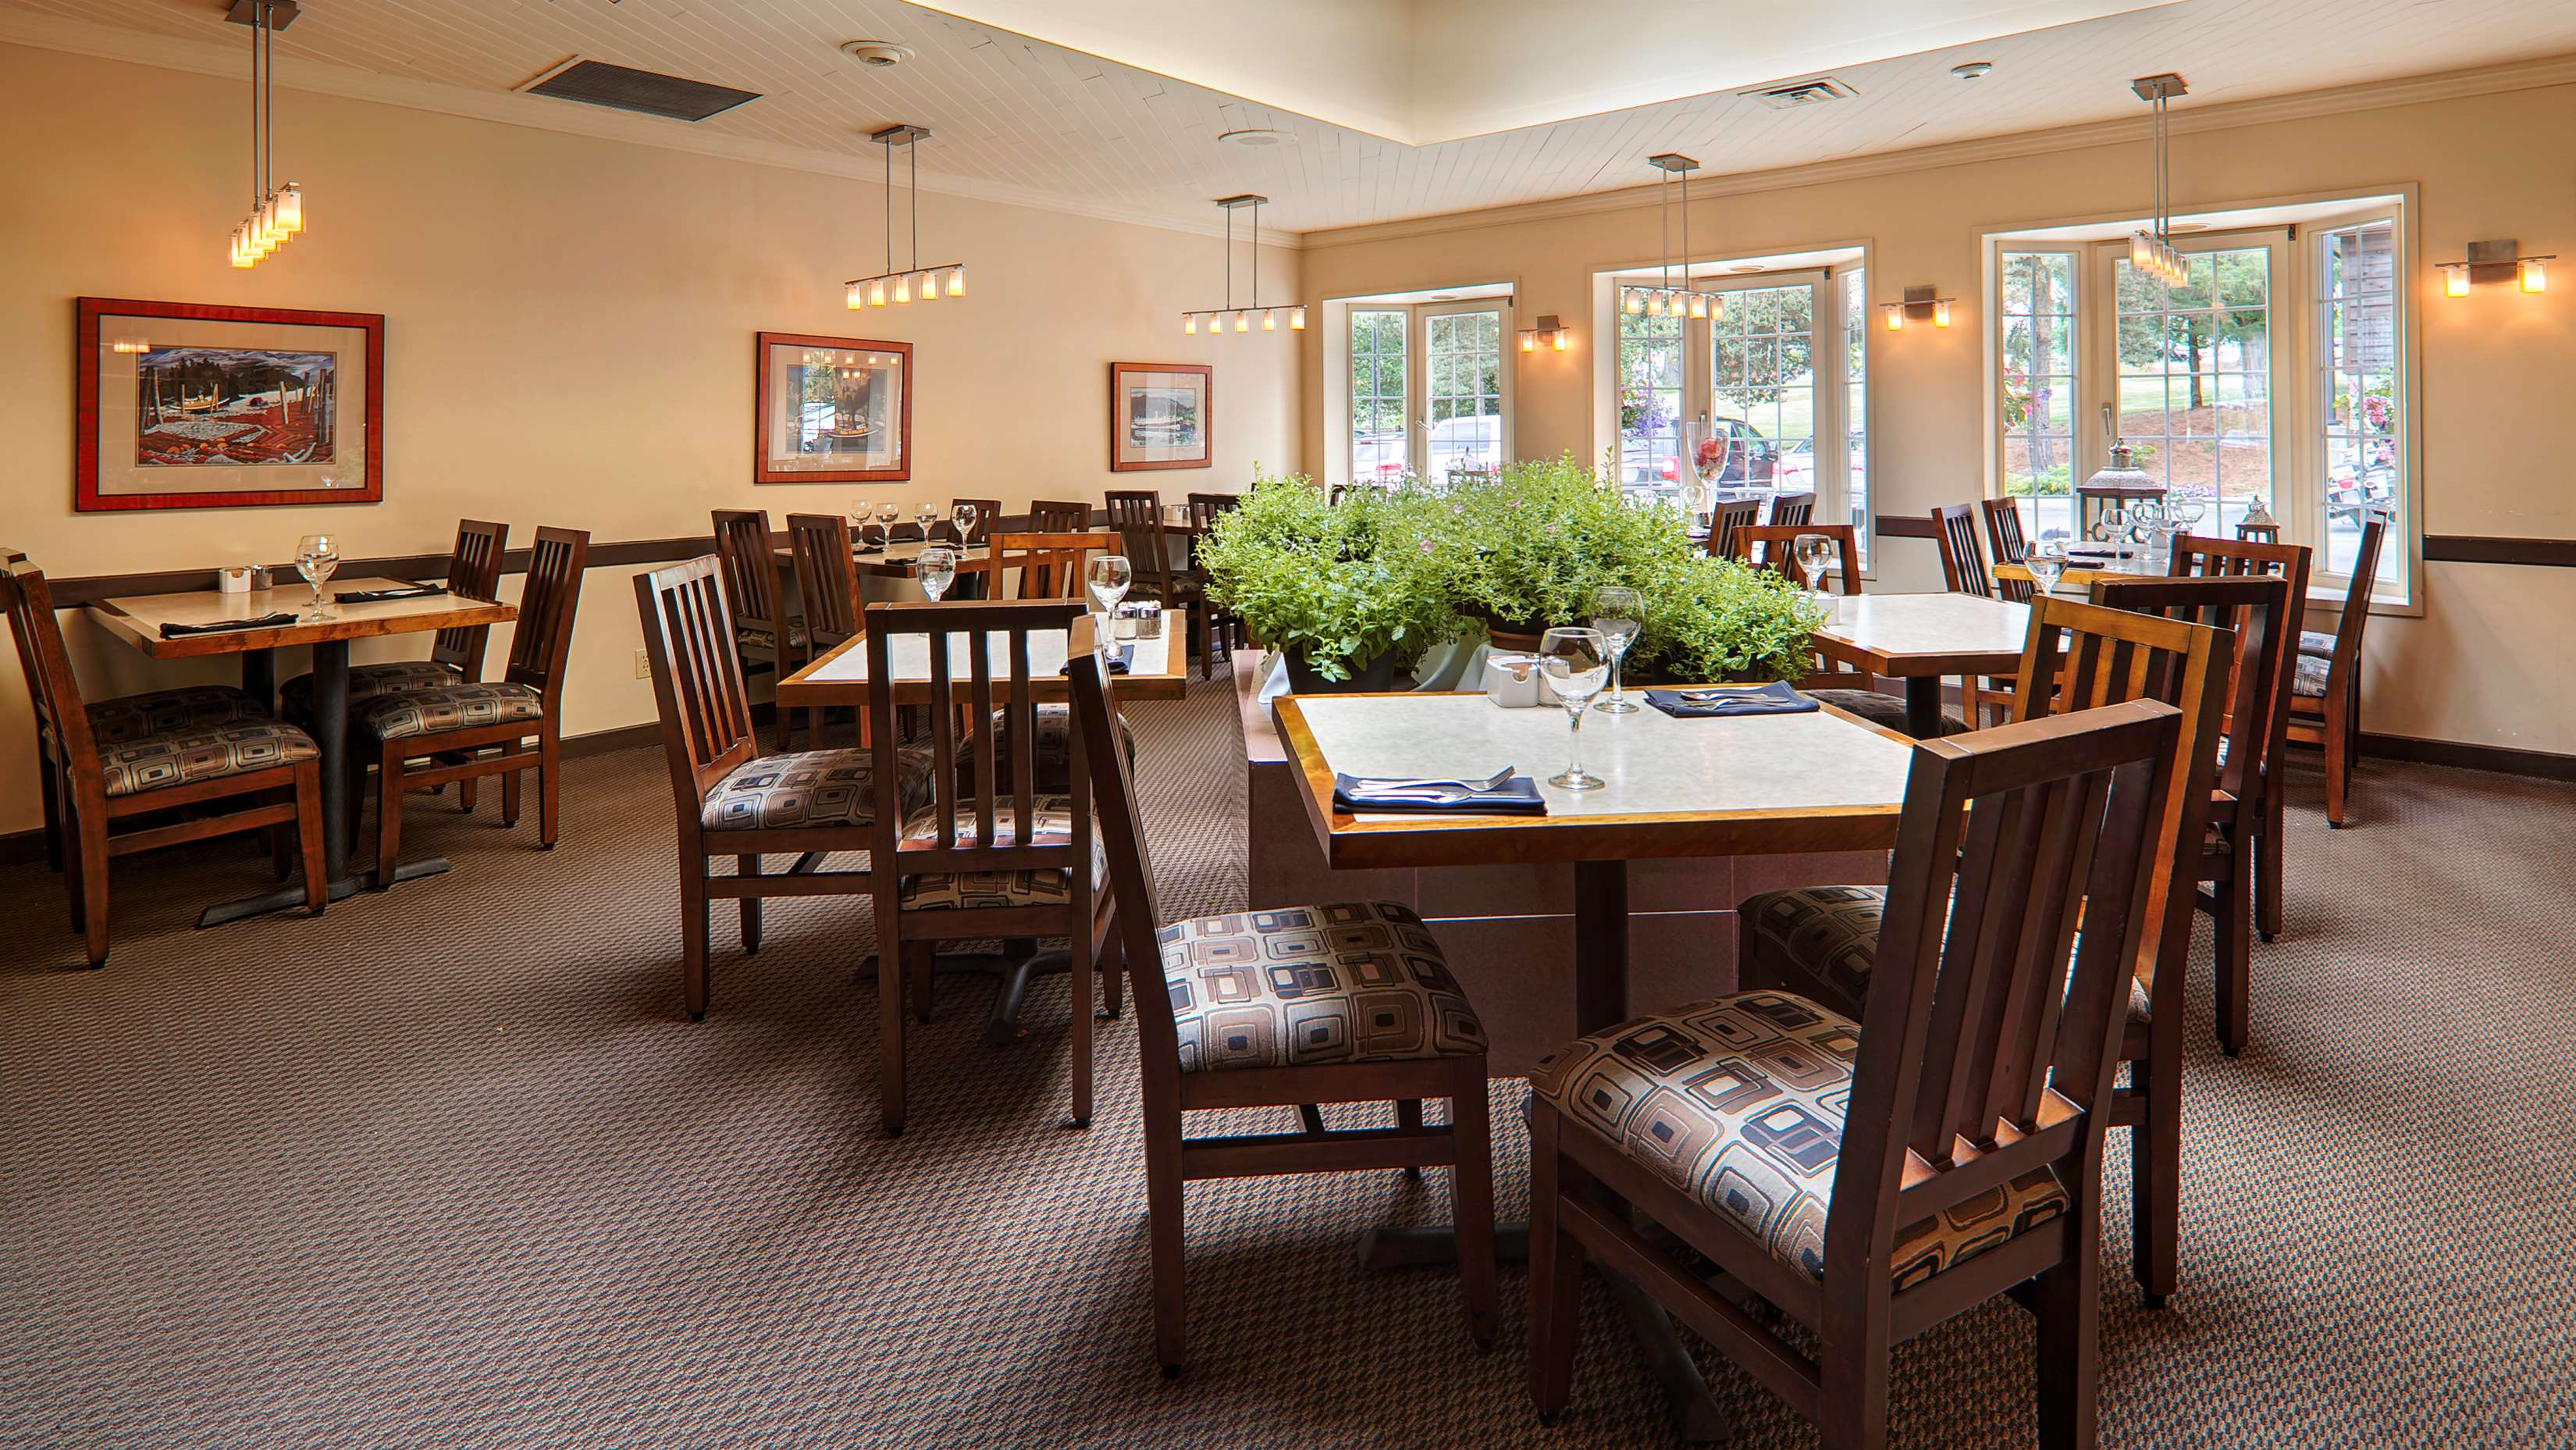 Best Western Cowichan Valley Inn in Duncan: On-site Restaurant